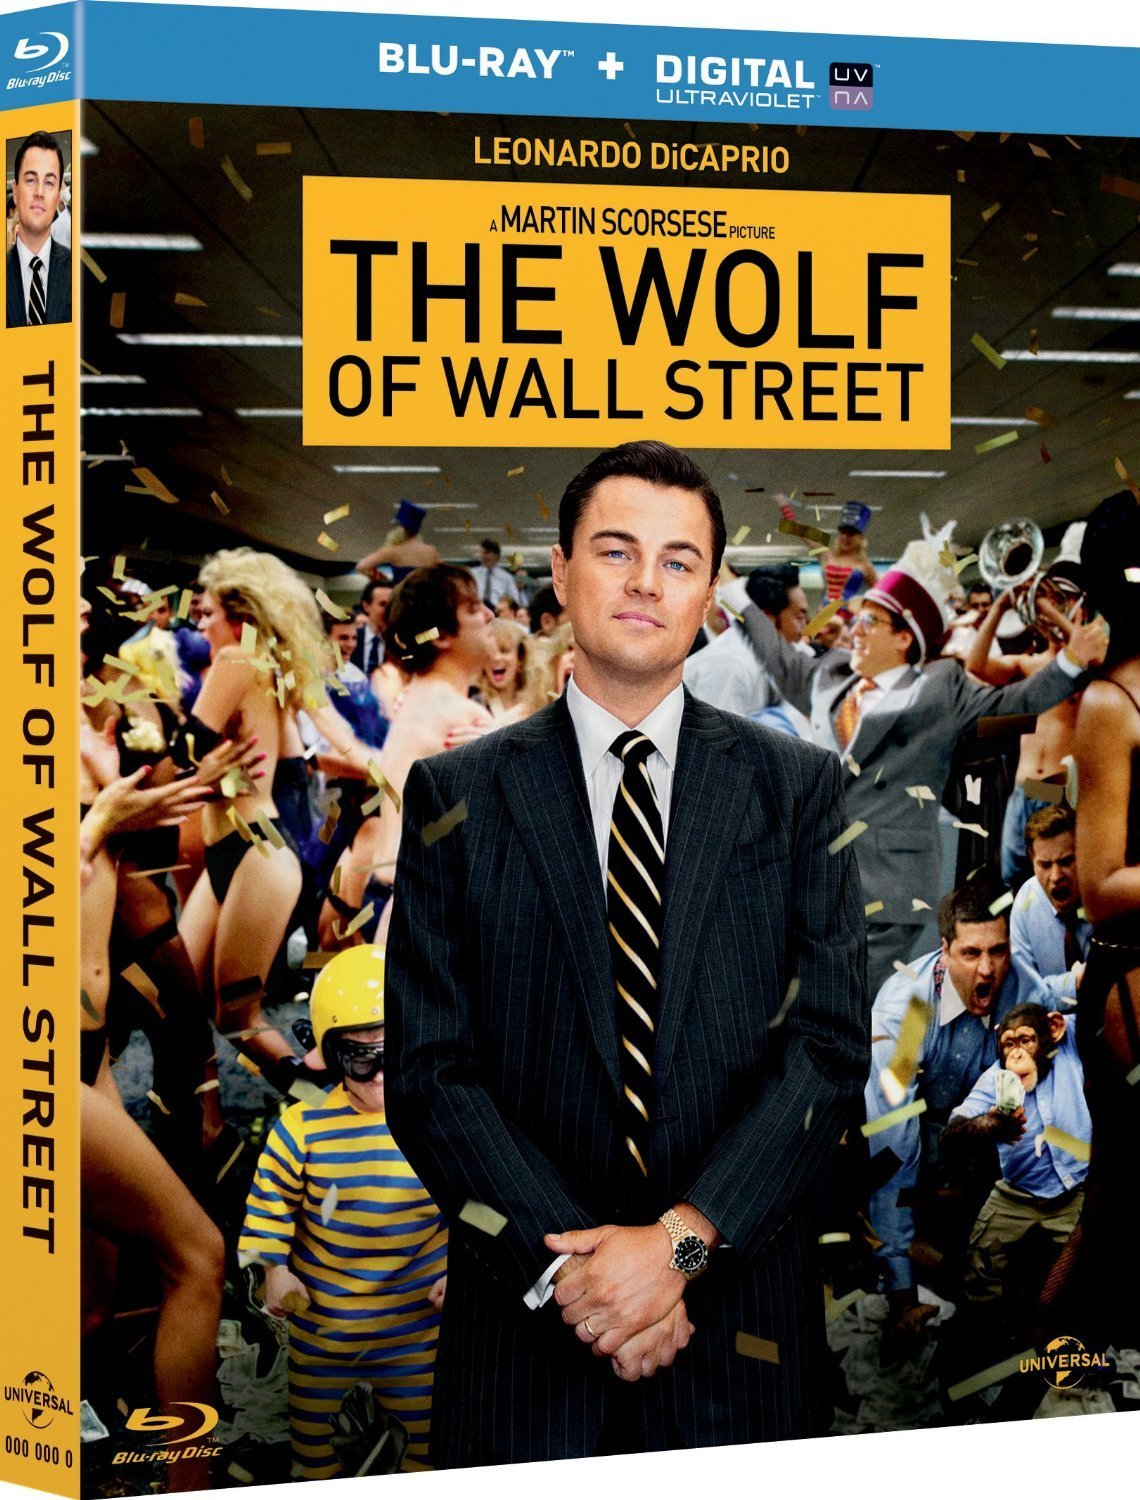 Wolf Of Wall Street Blu Ray Now Available on Blu-Ray